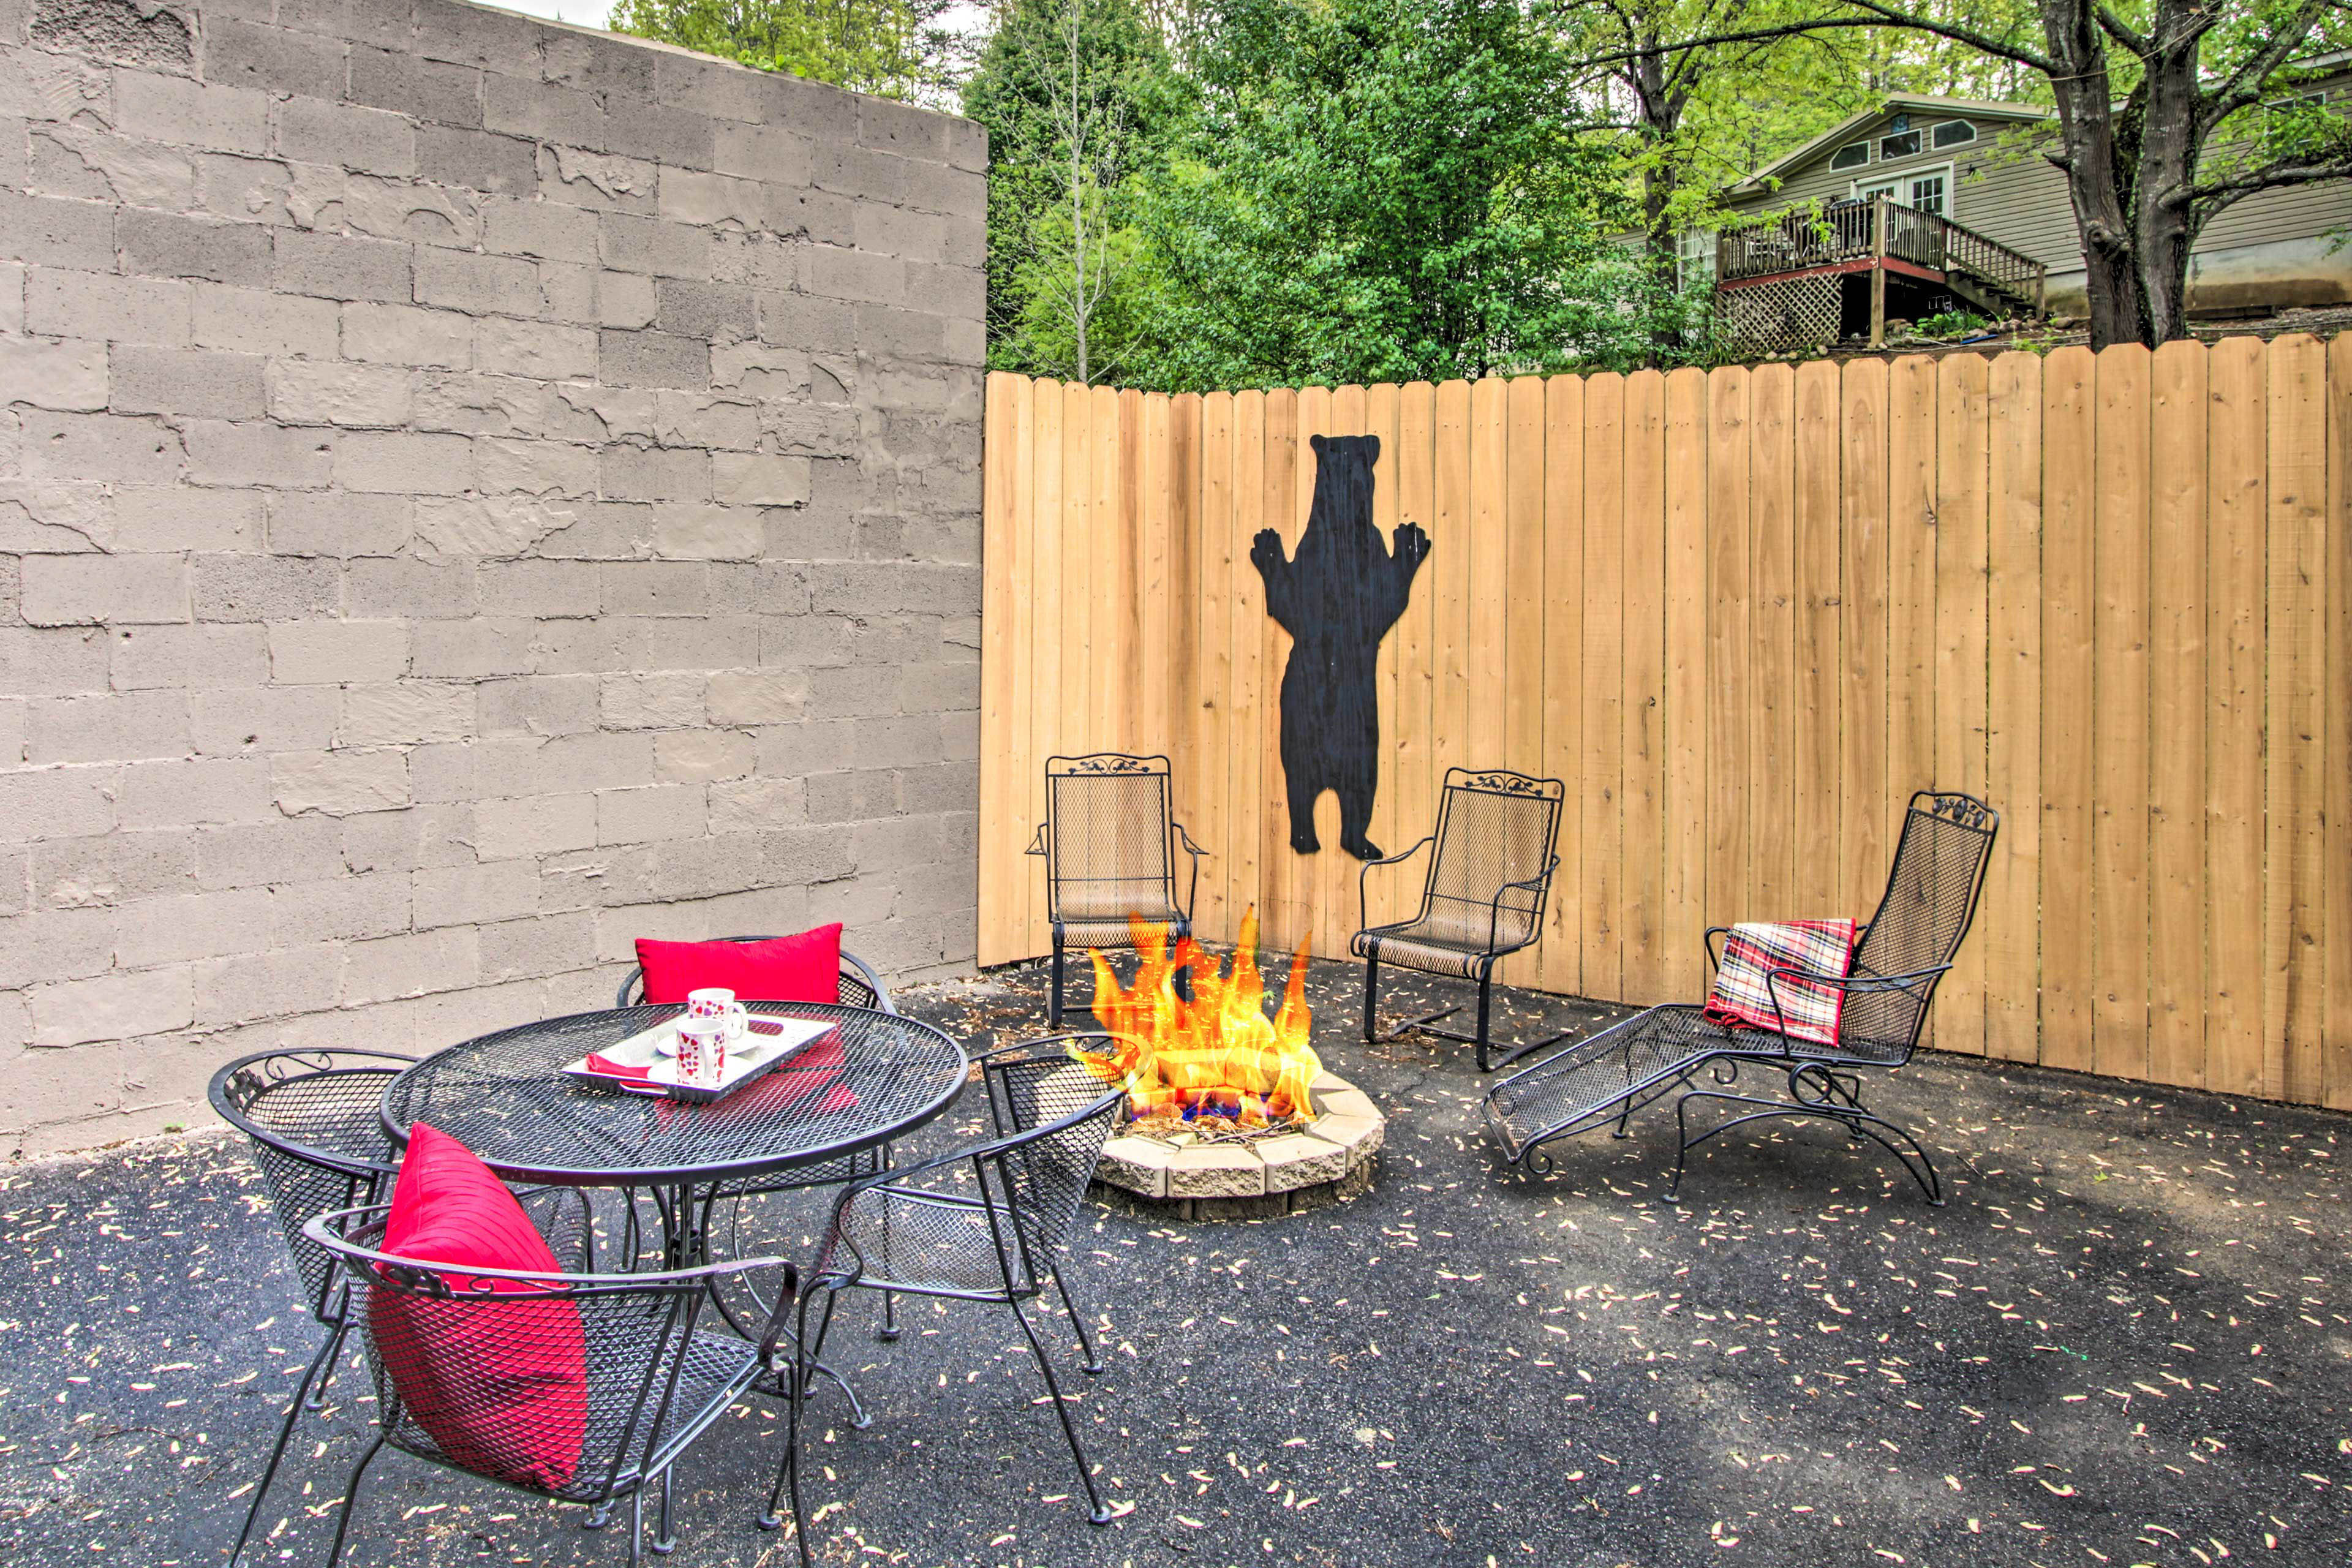 Enjoy a meal from the gas grill or roast s'mores around the fire pit!